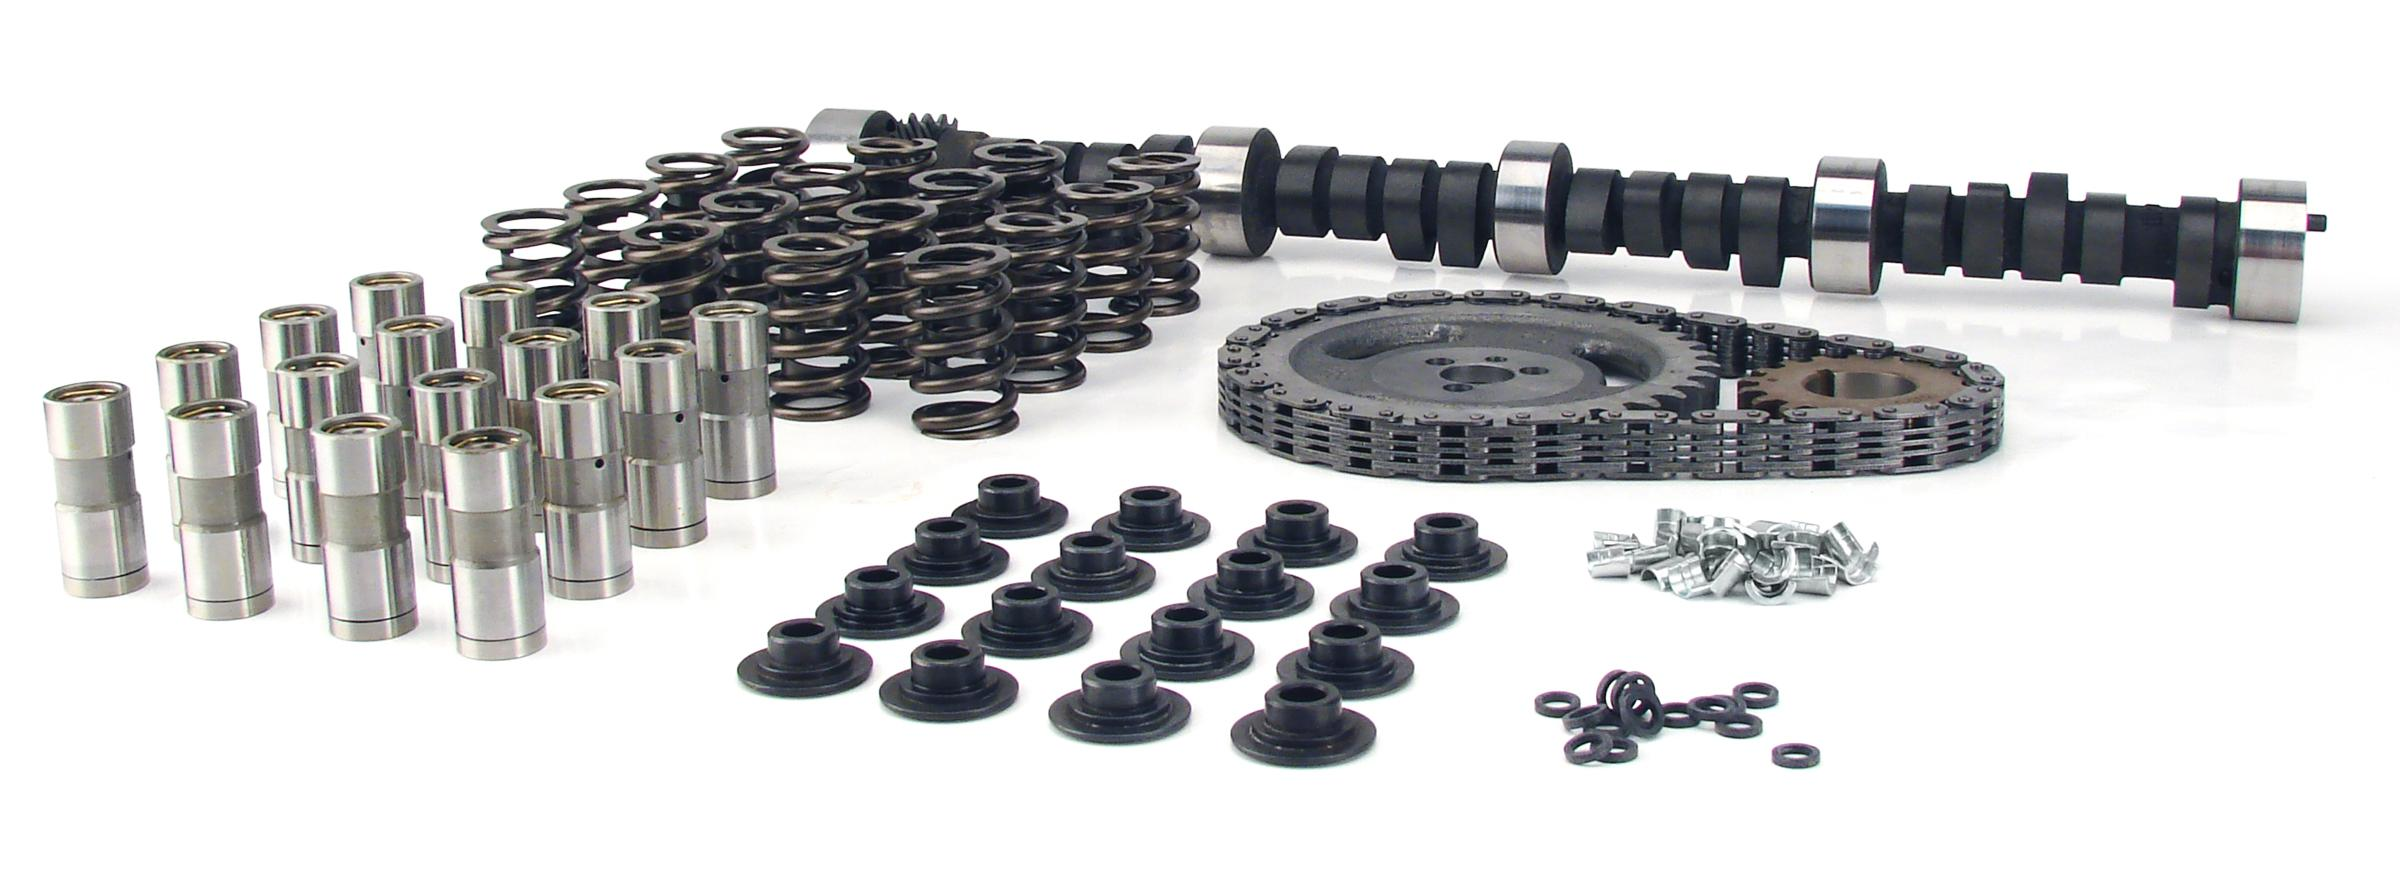 Competition Cams 12-601-4 Mutha Thumpr 287TH7 Camshaft for Small Block Chevy